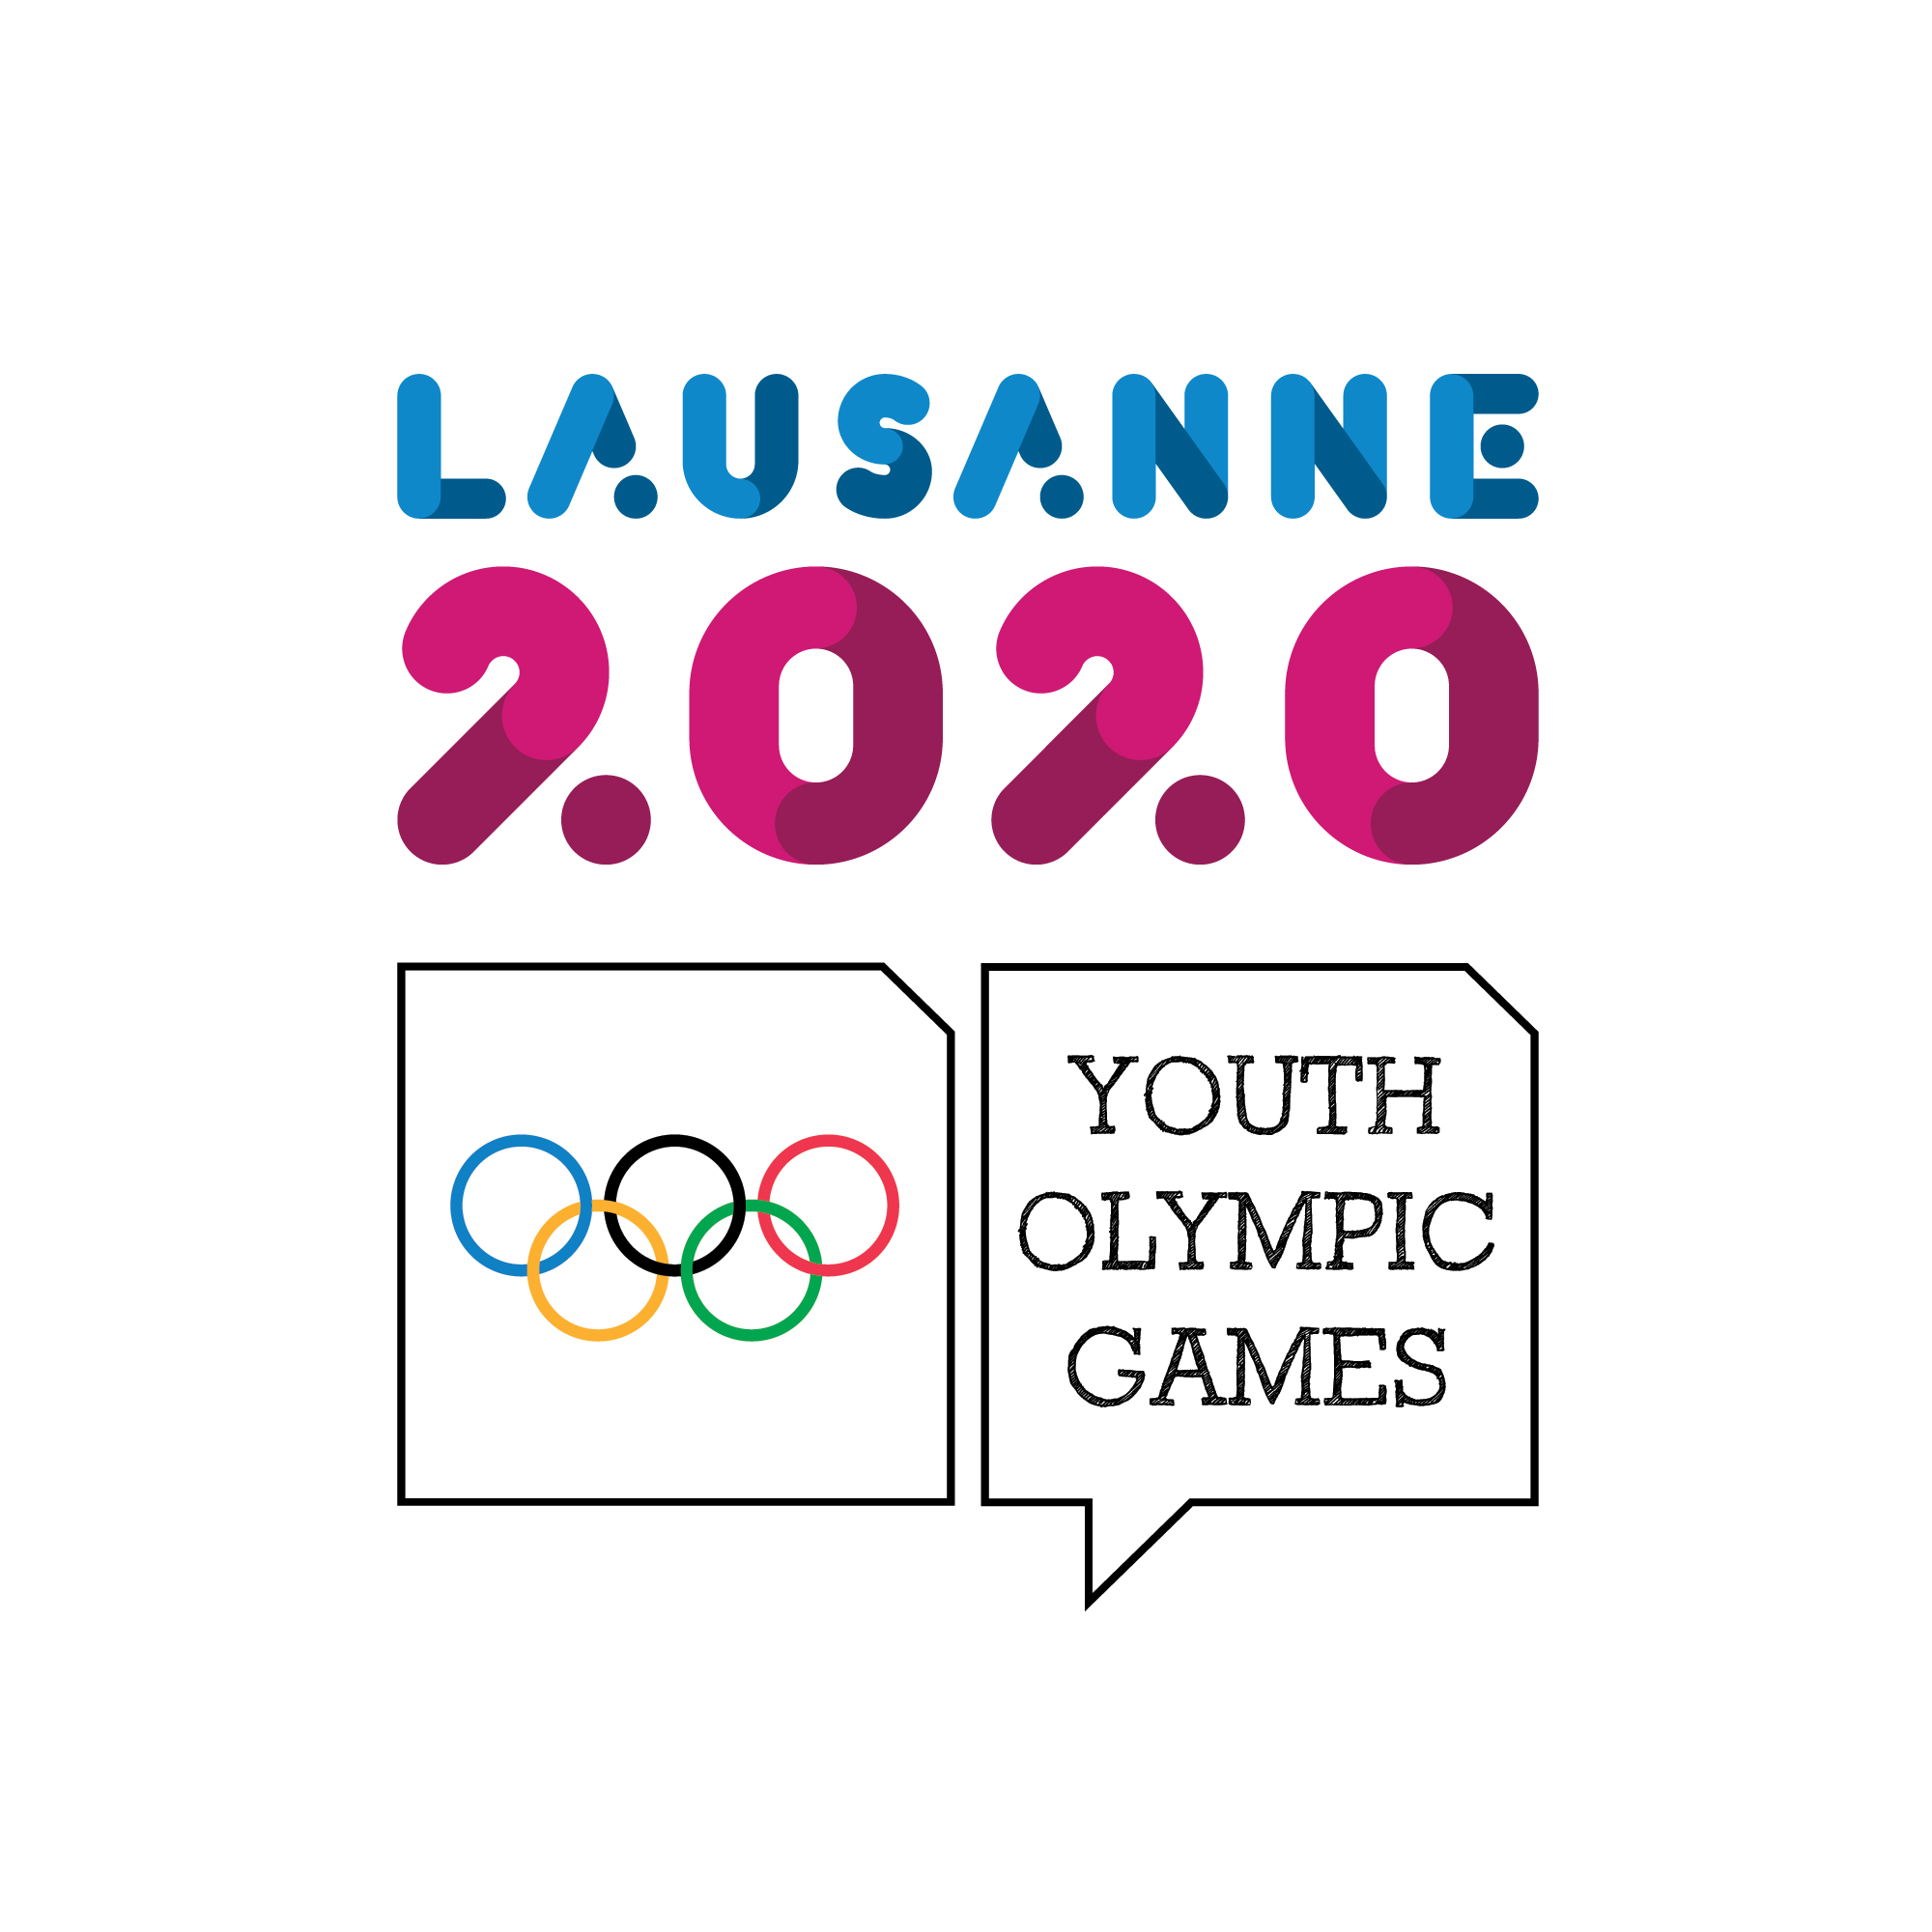 Poland Winter Olympics 2020.Youth Olympic Games 2020 World Curling Federation